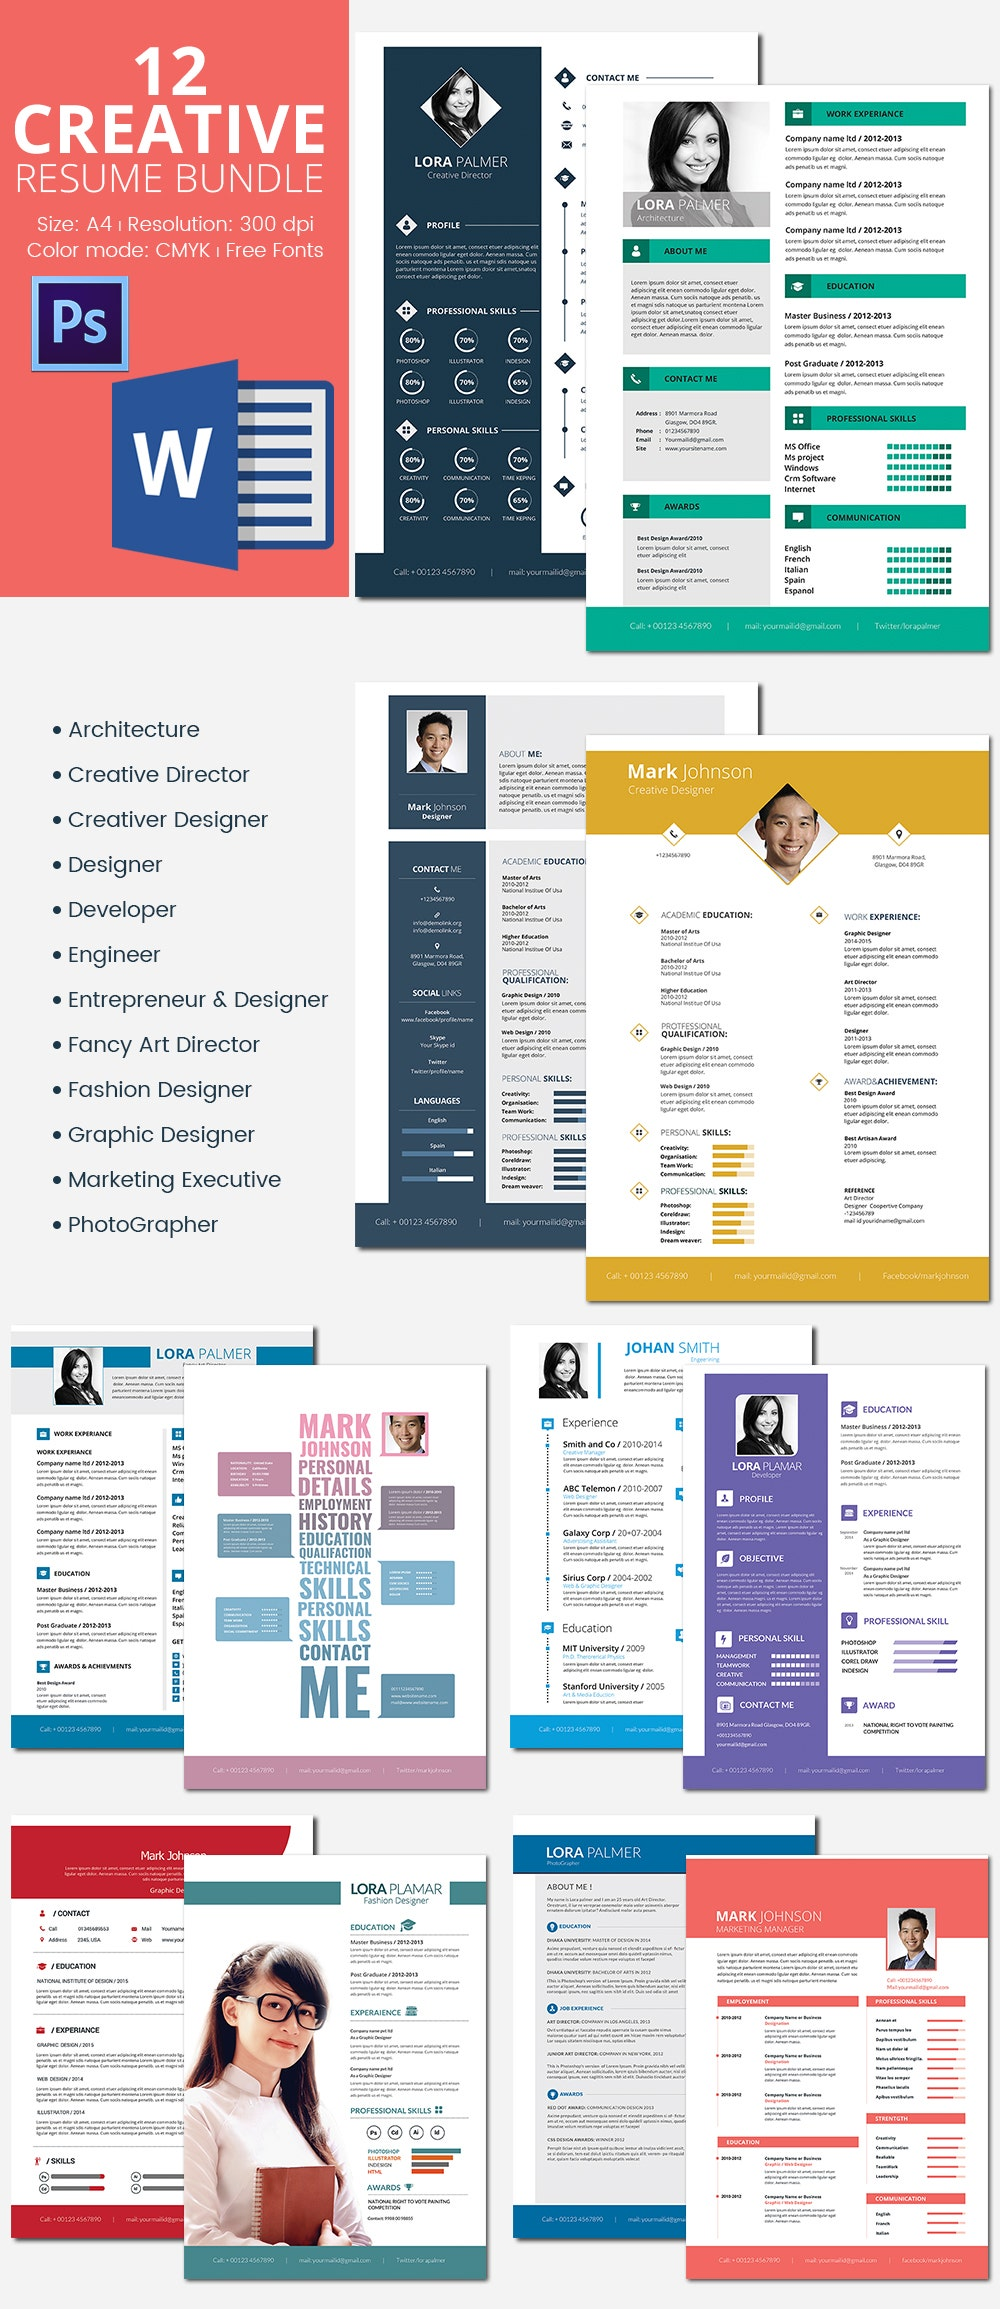 Civil Engineer Resume Template – 10+ Free Word, Excel, PDF ...